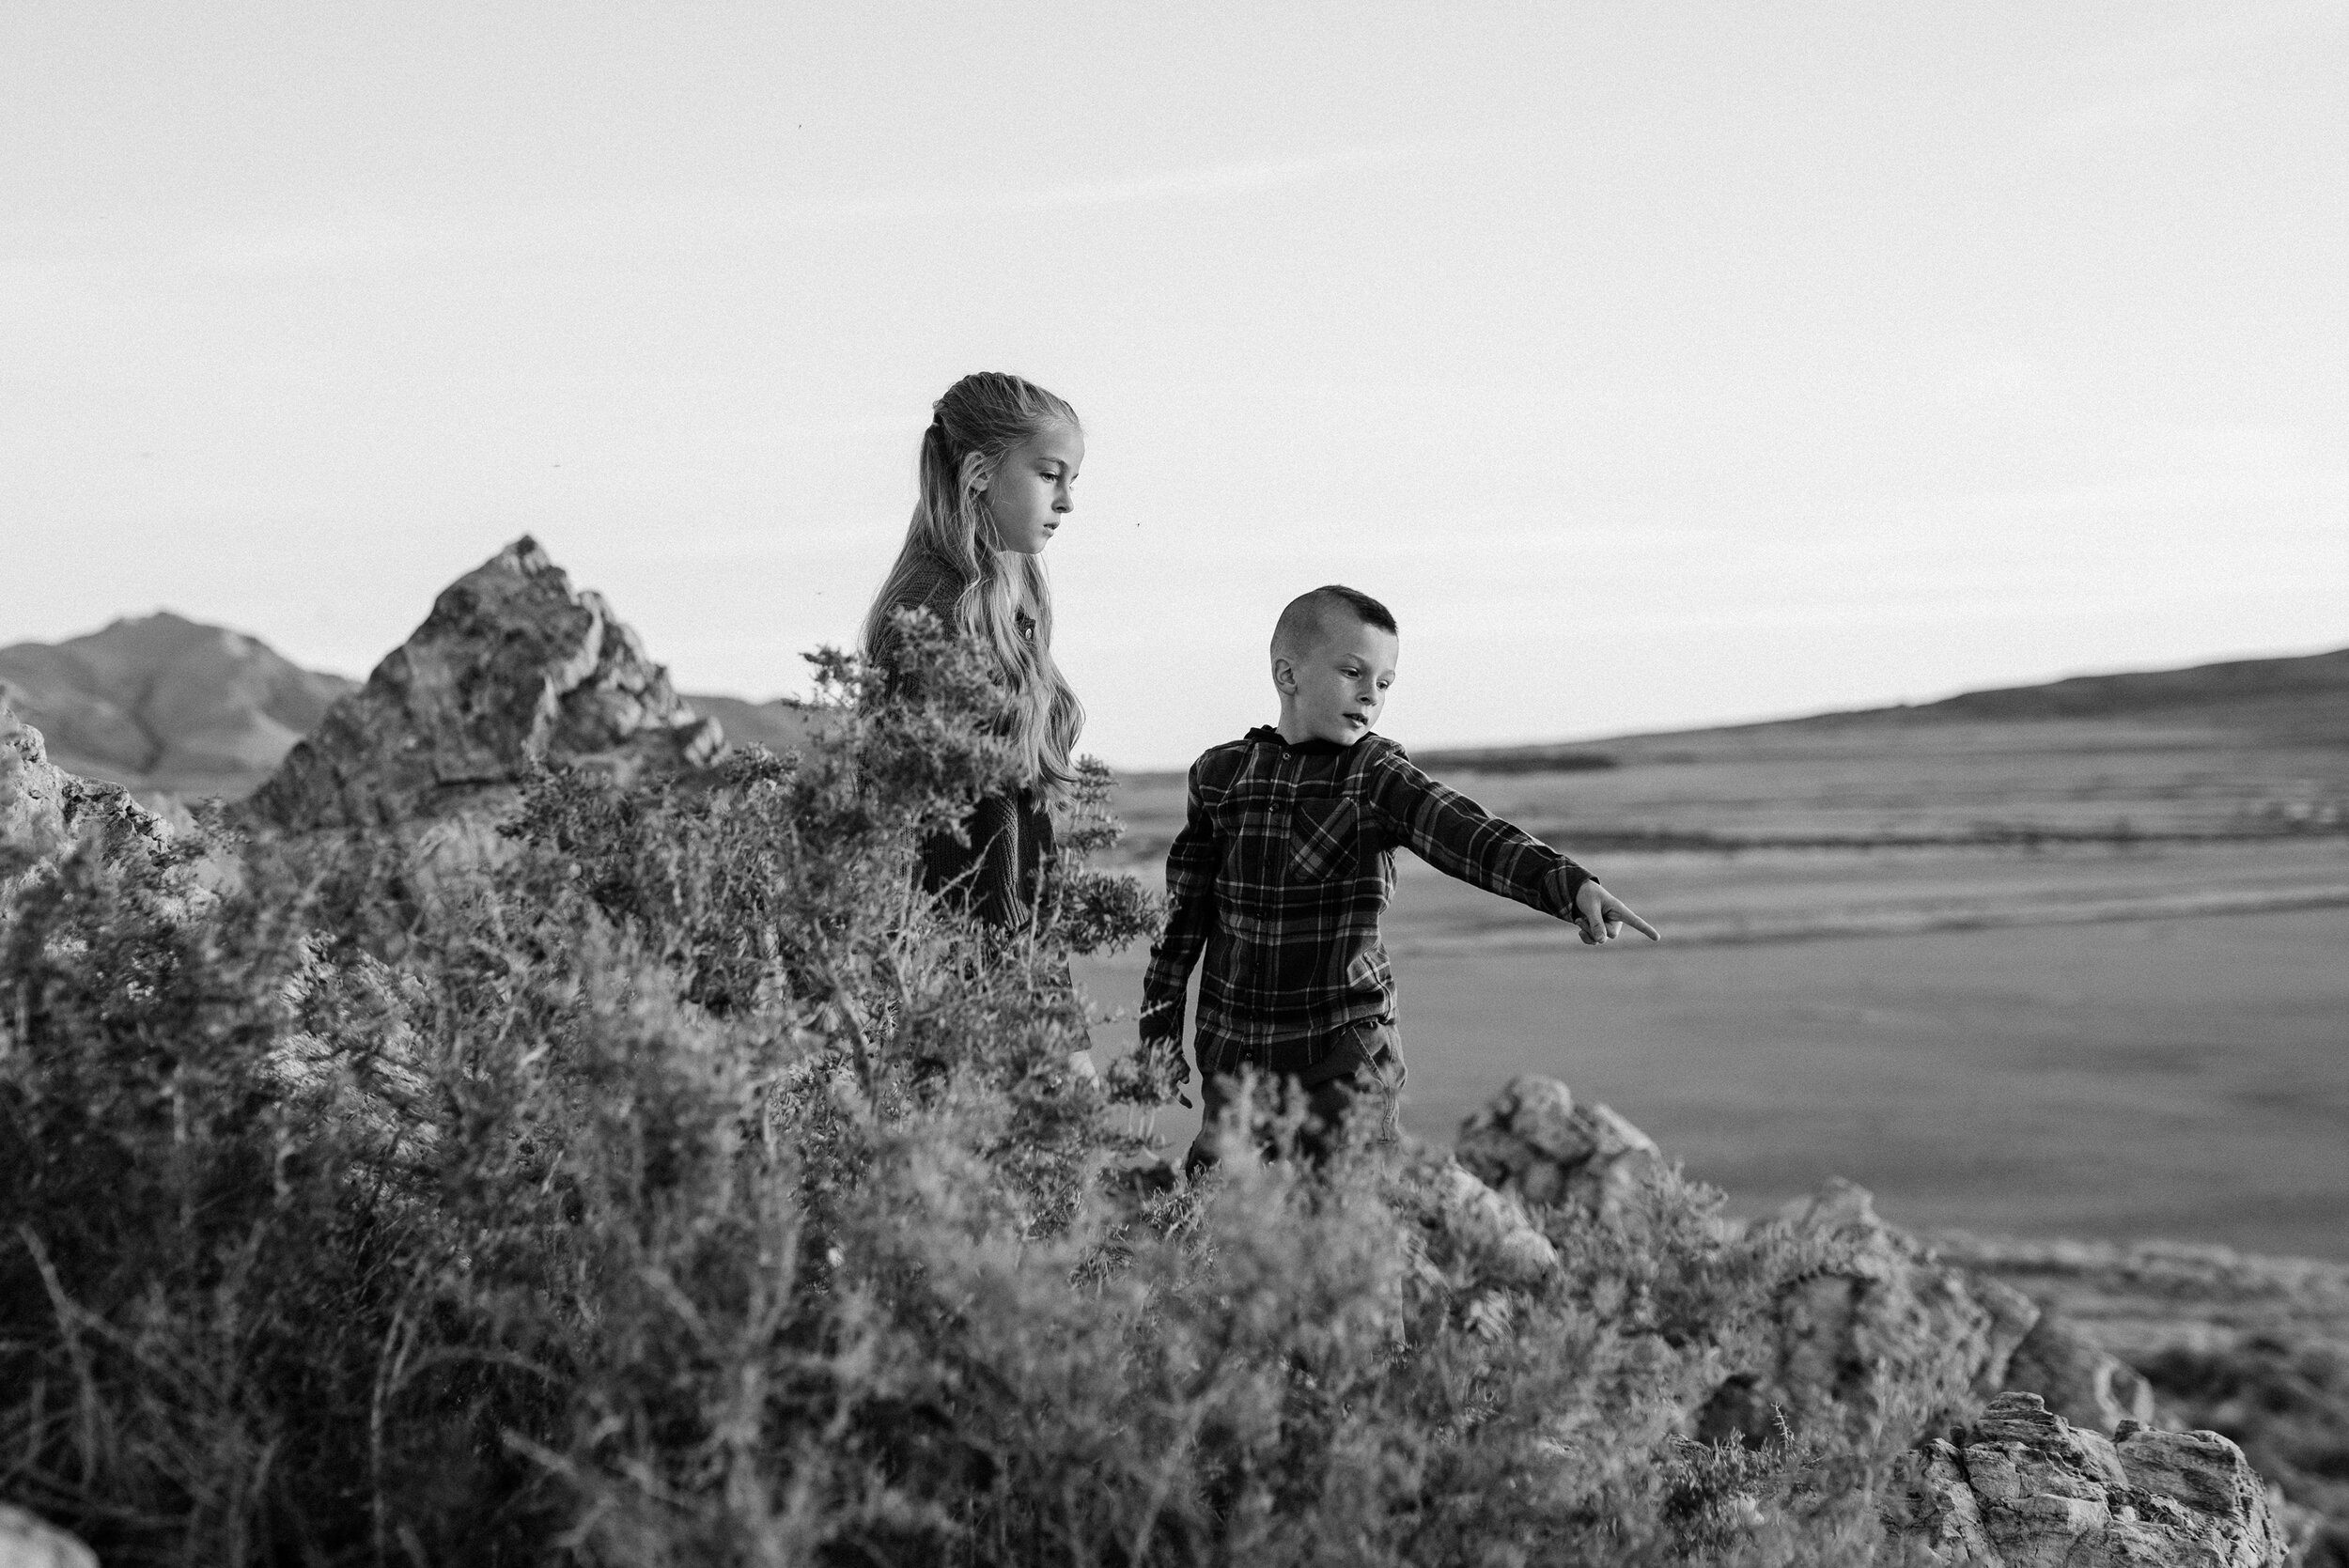 Brother and sister explore Antelope Island together in a unique and playful family photo shoot session by Kristi Alyse Photography. Fall goals brother and sister goals black and white photo shoot inspiration ideas and goals outdoor photo shoot aesthetic inspiration ideas and goals Utah family professional family photographer  #familypictures #utahphotographer #antelopeisland #outfitinspo #familypics #familyphotographer #pinkhair #saltlakecityphotog #slcfamilypictures